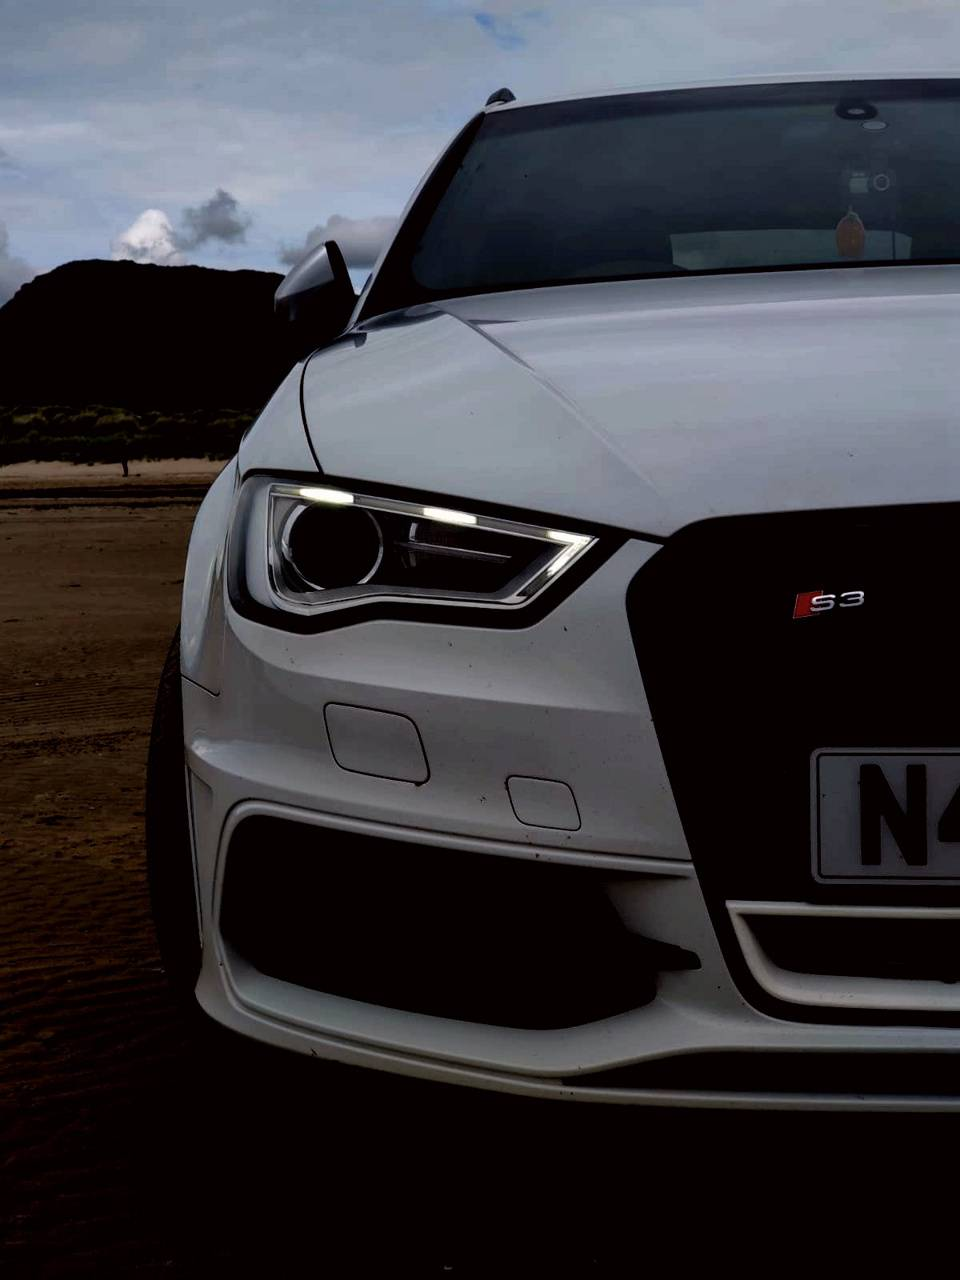 Audi S3 Wallpaper By The Car Snapper 3b Free On Zedge